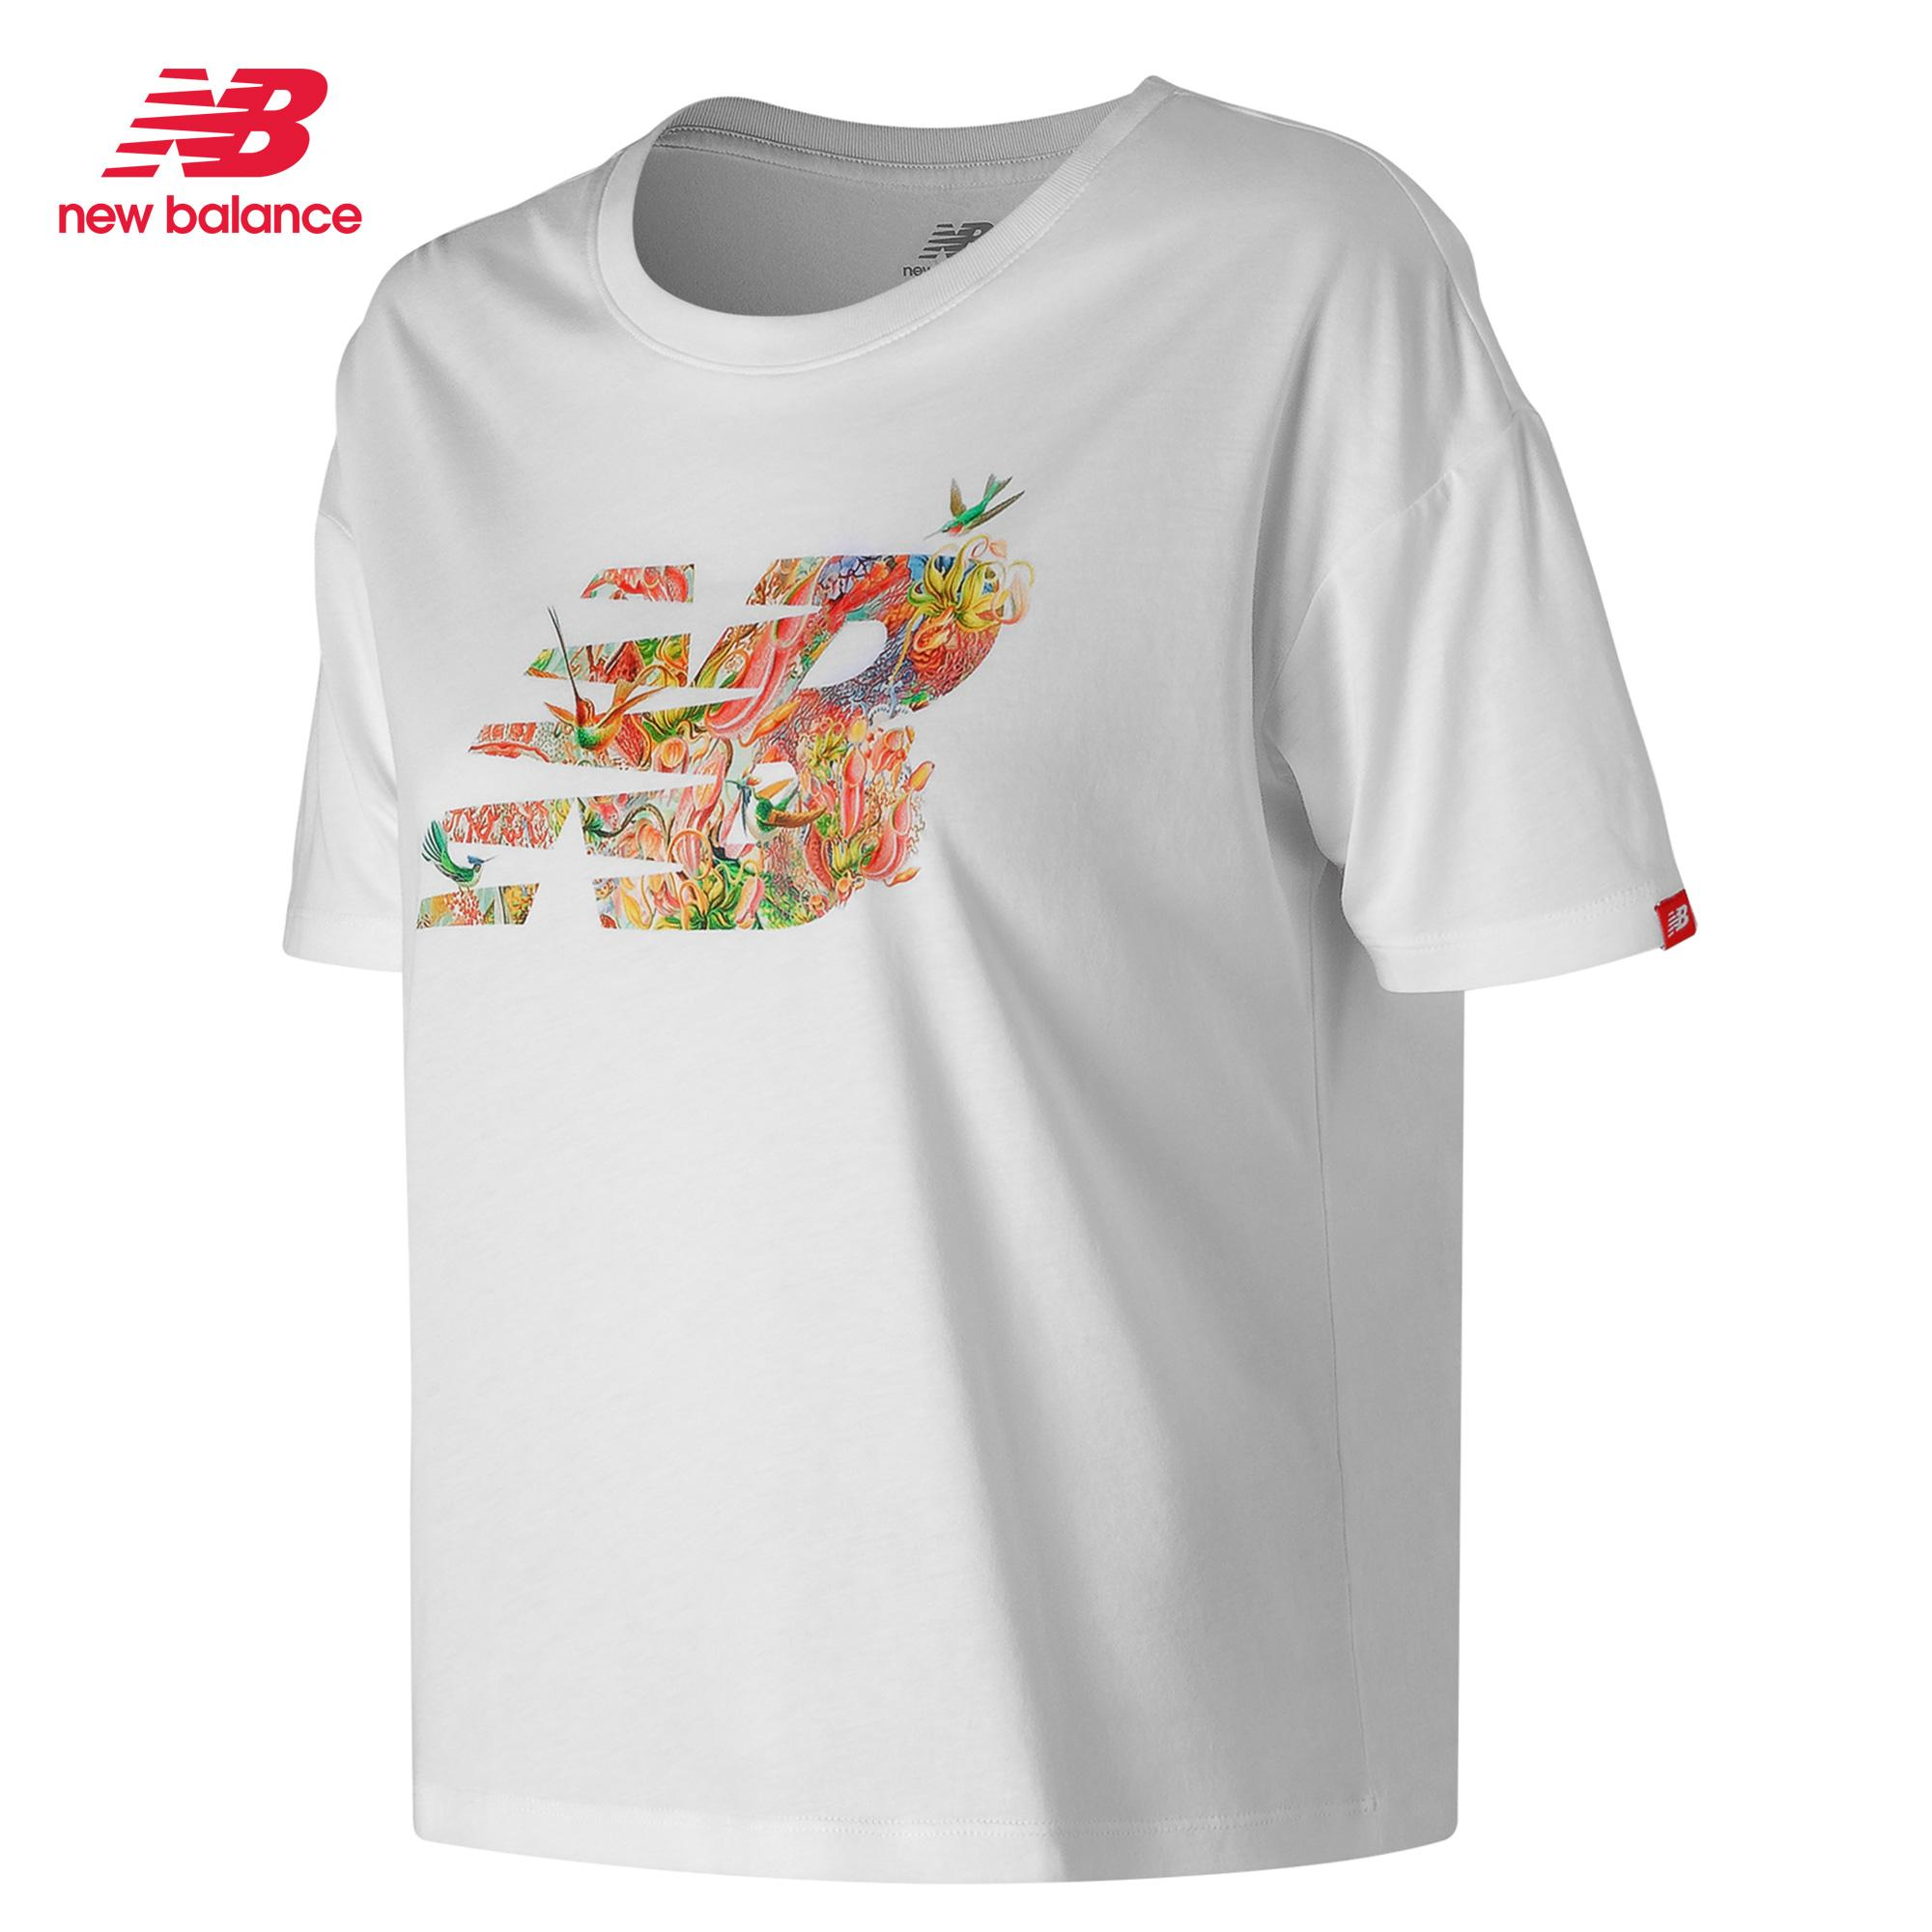 95cf4e30994e6 New Balance Philippines - New Balance Fashion Clothes for Women for ...